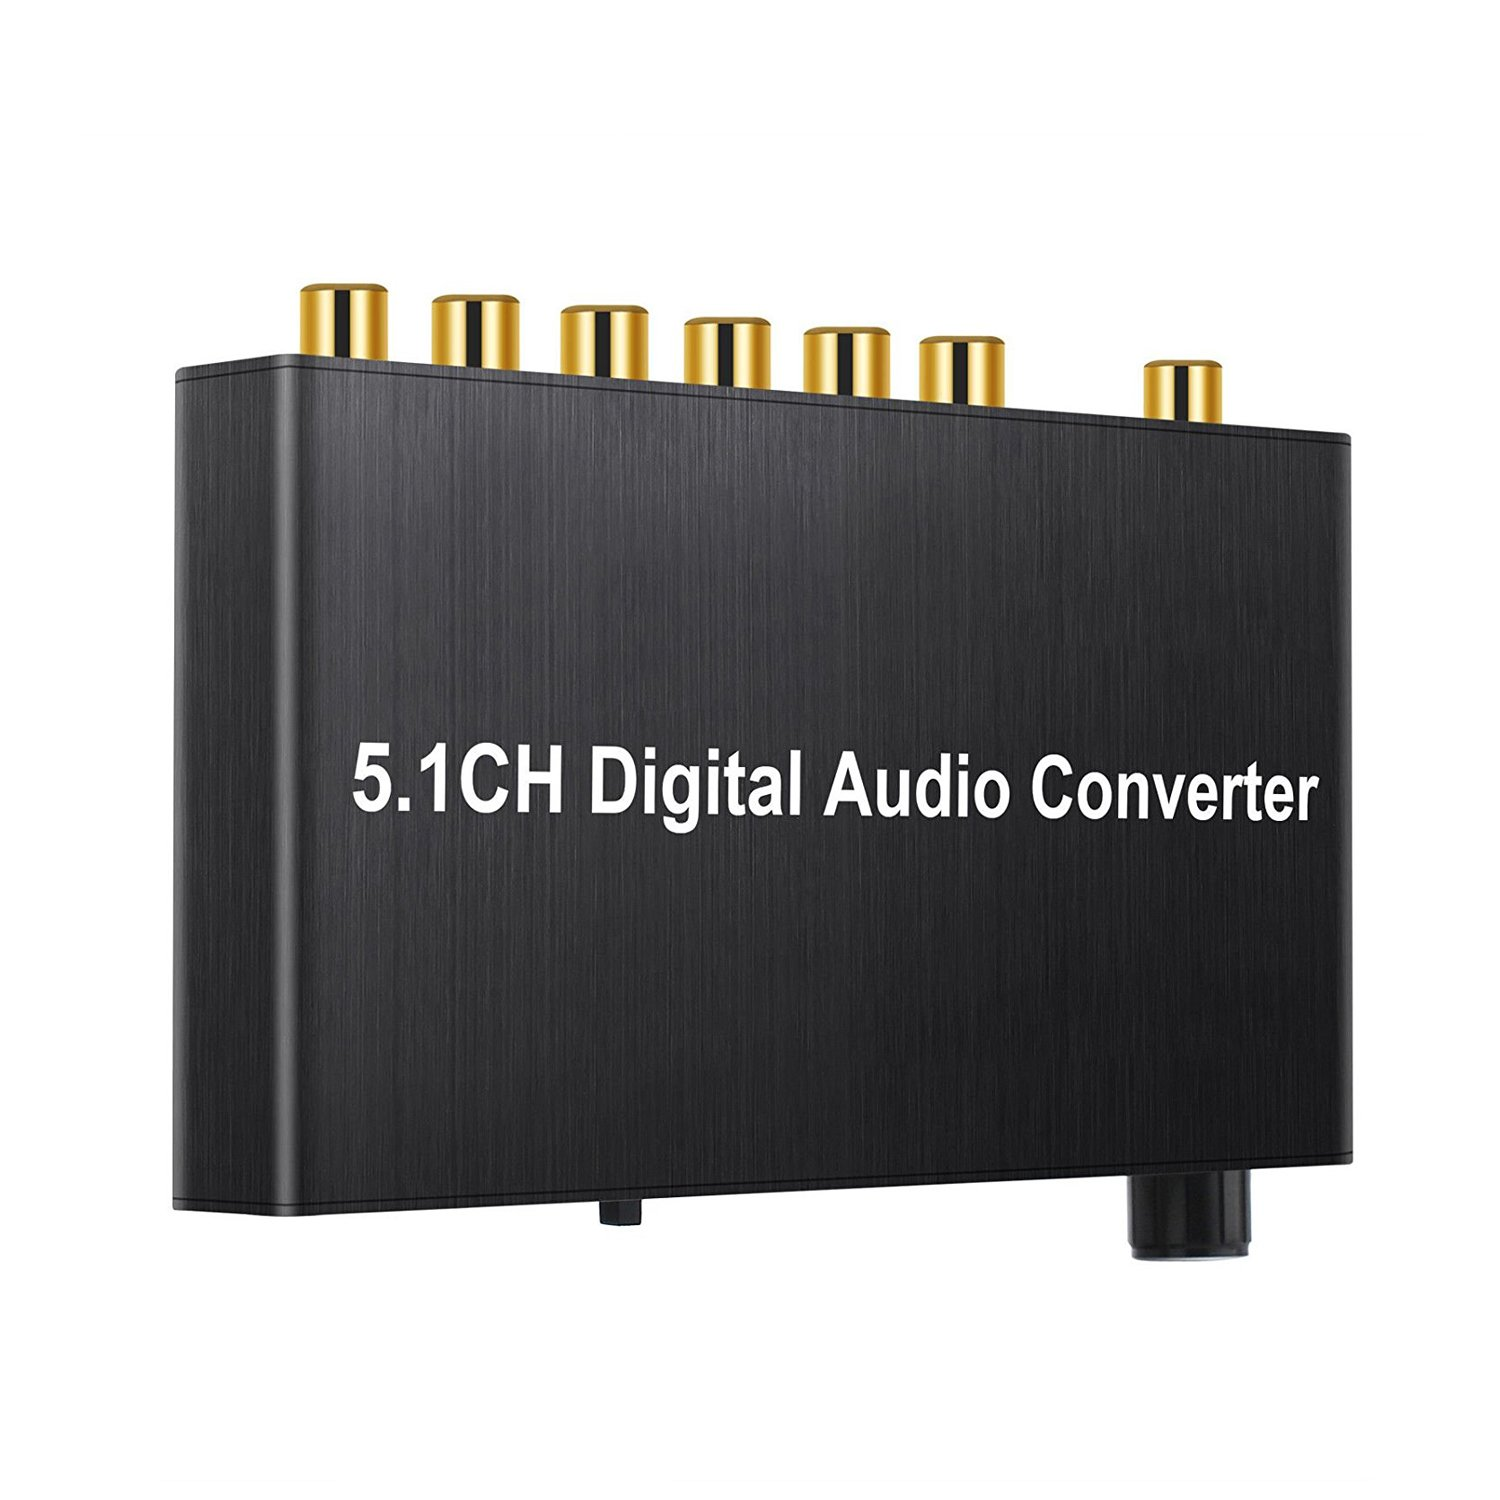 SODIAL 192kHz DAC Converter Digital Audio Decoder Coaxial/Toslink to 5.1CH/2.0CH Analog 3.5mm Jack Output with Volume Control knob Dolby AC3/DTS HDTV for Amplifier Soundbar